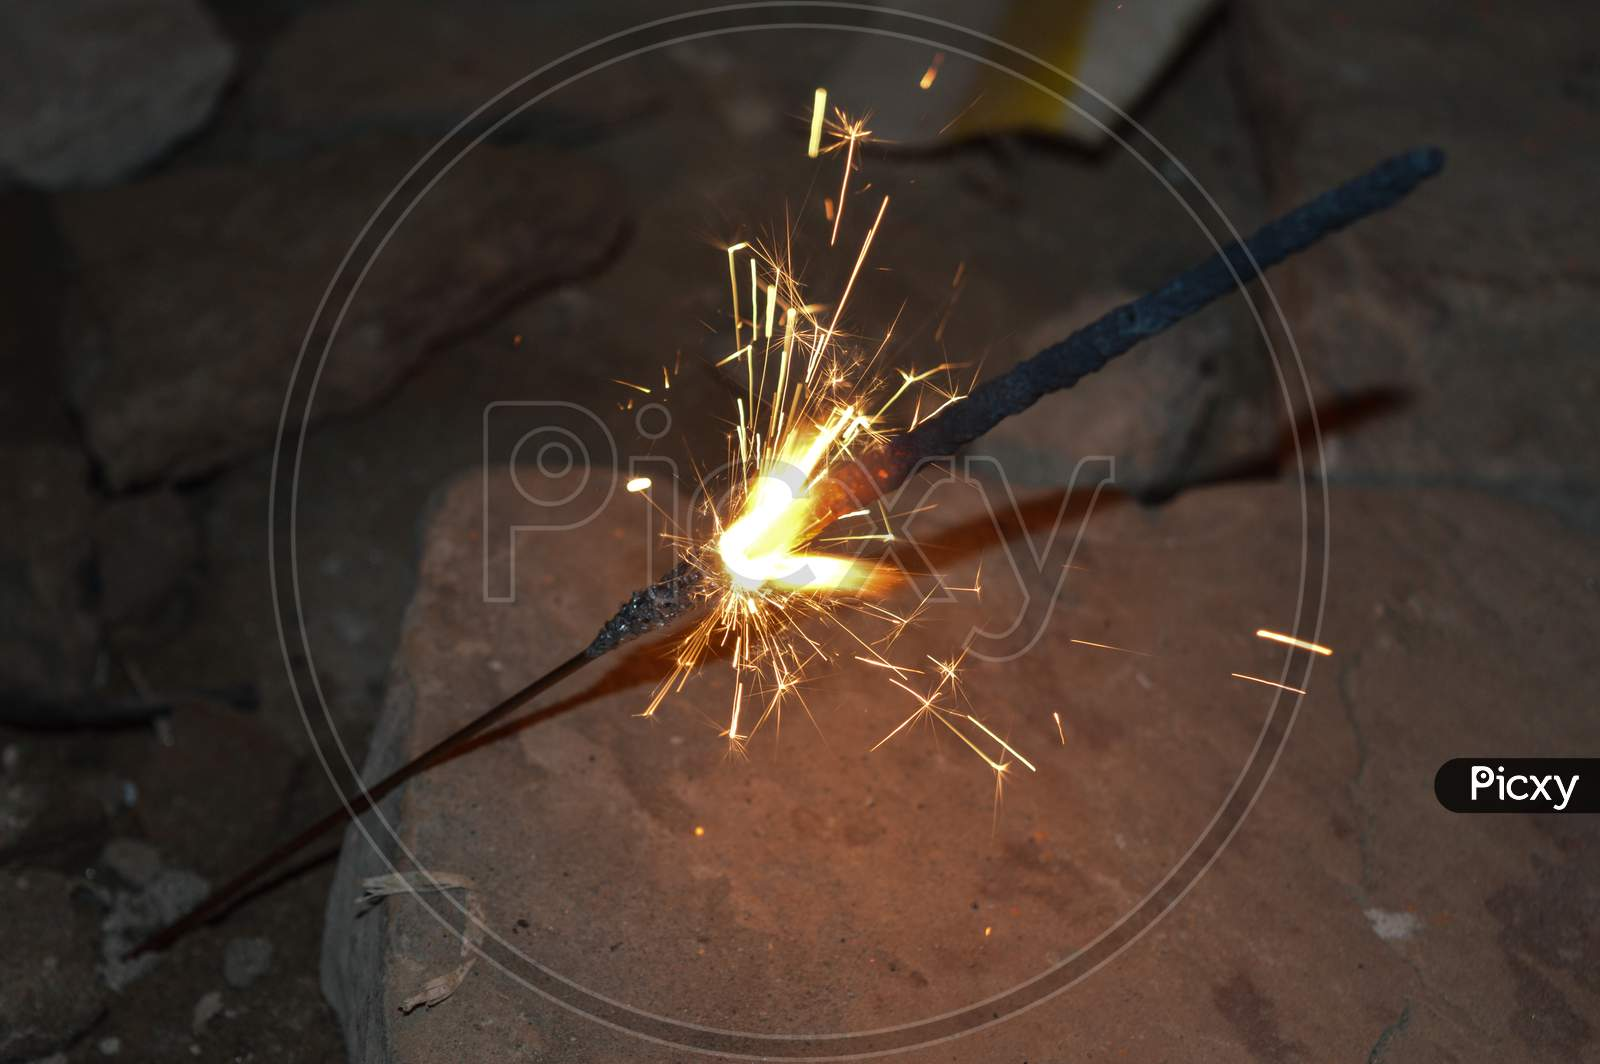 Indian Lady Playing With Fire Cracker Rose And Candle On Indian Festival Diwali Deepawali With Fire Isolated On Table